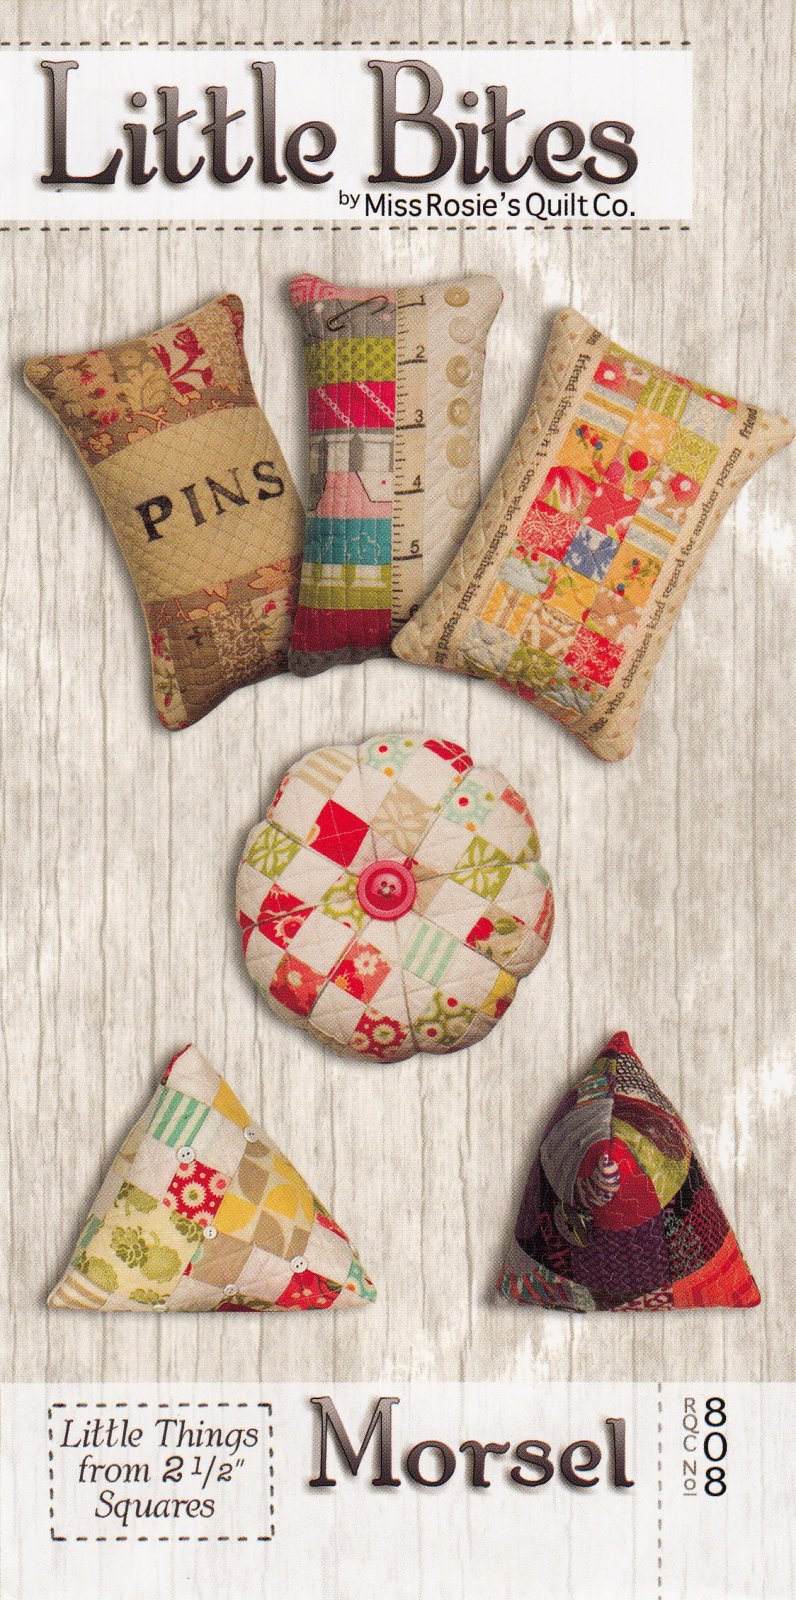 Little Bites - Morsel Pincushions